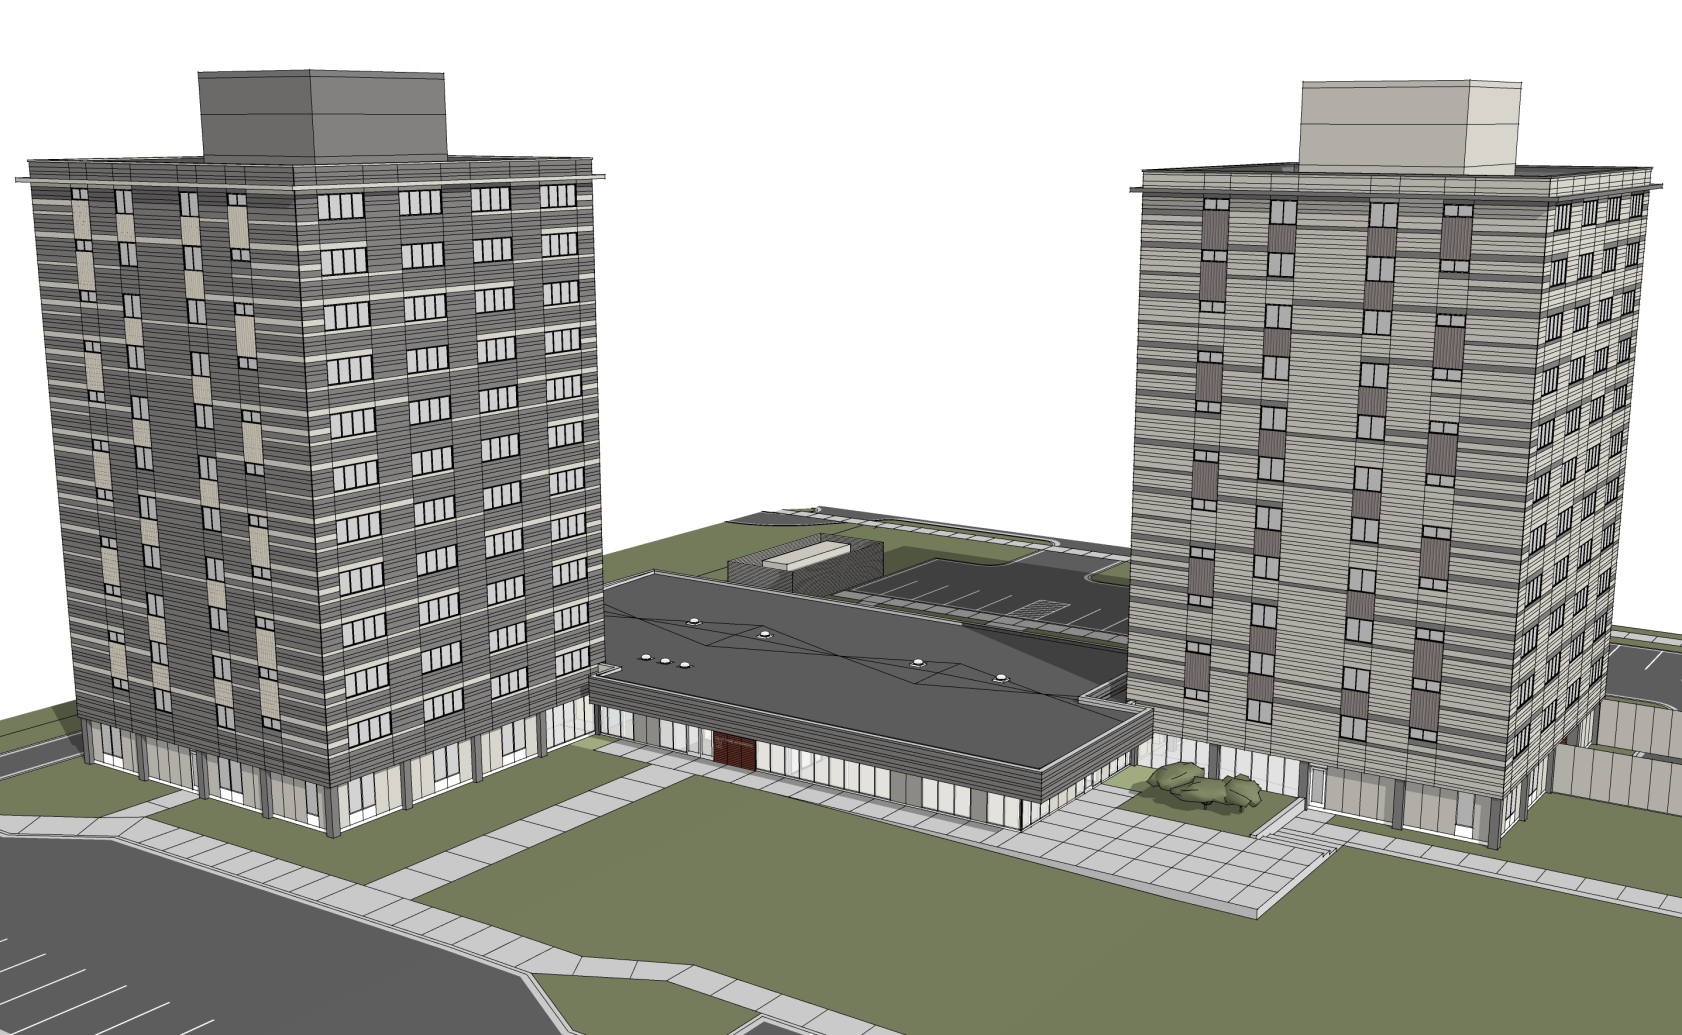 An architect's rendering of the updated Elliot Twins, including new 6,200 community-link addition.